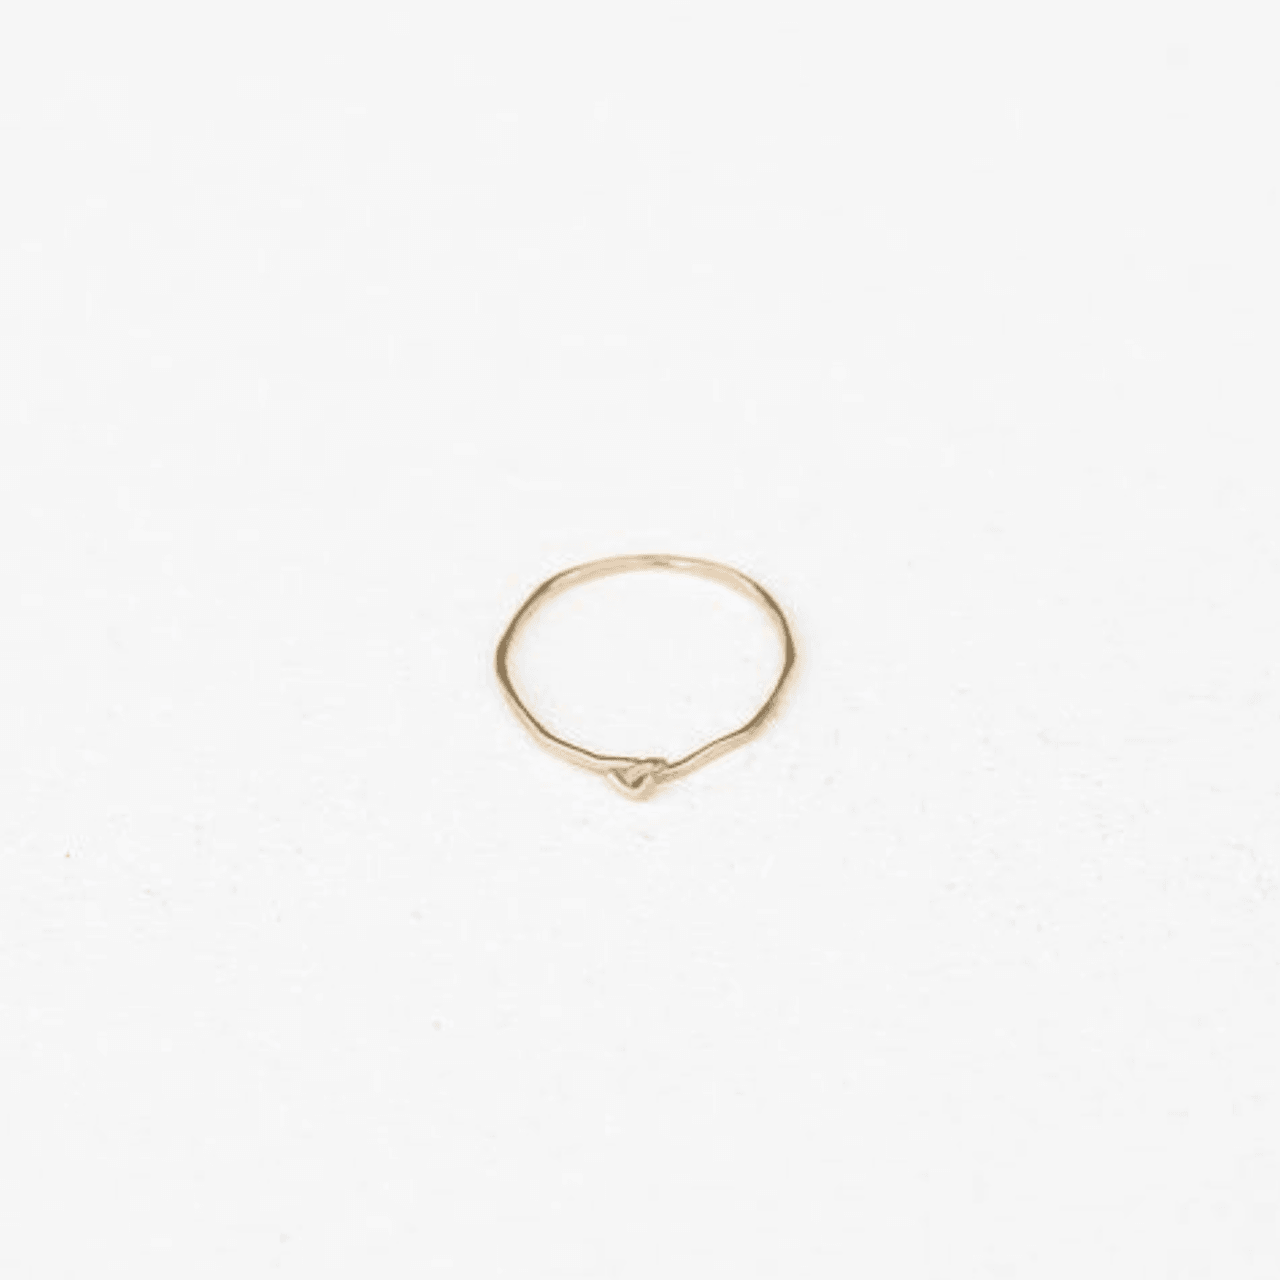 Kindred Gold Stacking Ring - Wind Blown Jewelry -Freehand Market